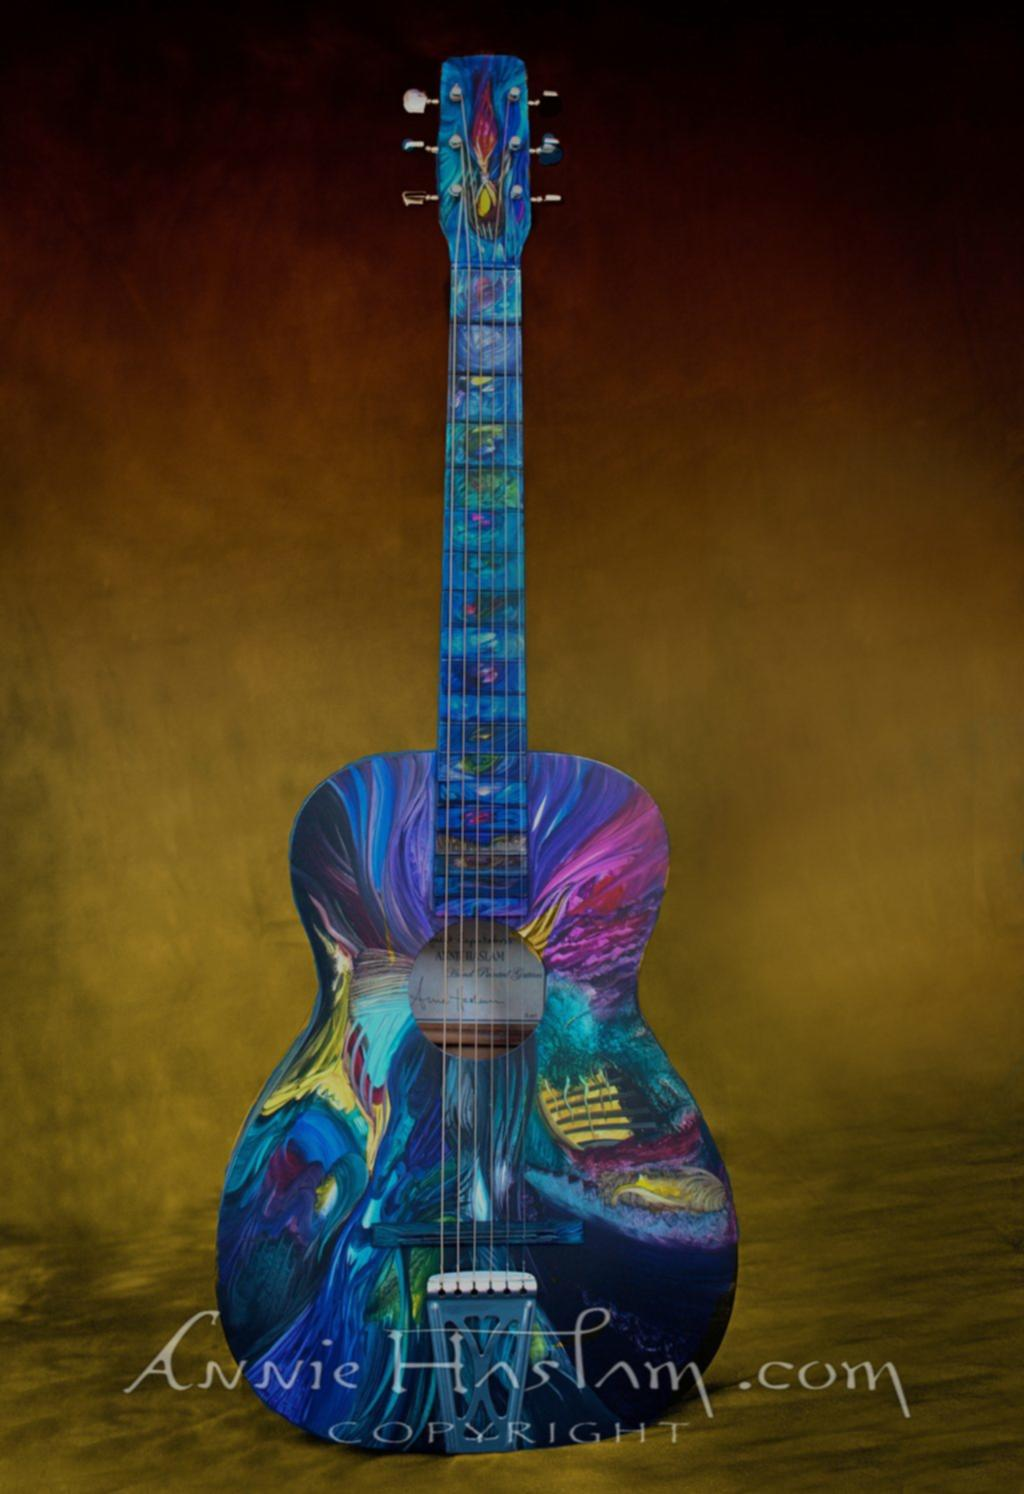 'Great Expectations' hand-painted art guitar: donated to charity auction at The Bottom Line, Nagoya, Japan to benefit young musicians affected by the Tsunami. Annie traveled from the USA with the guitar and also performed at the show.